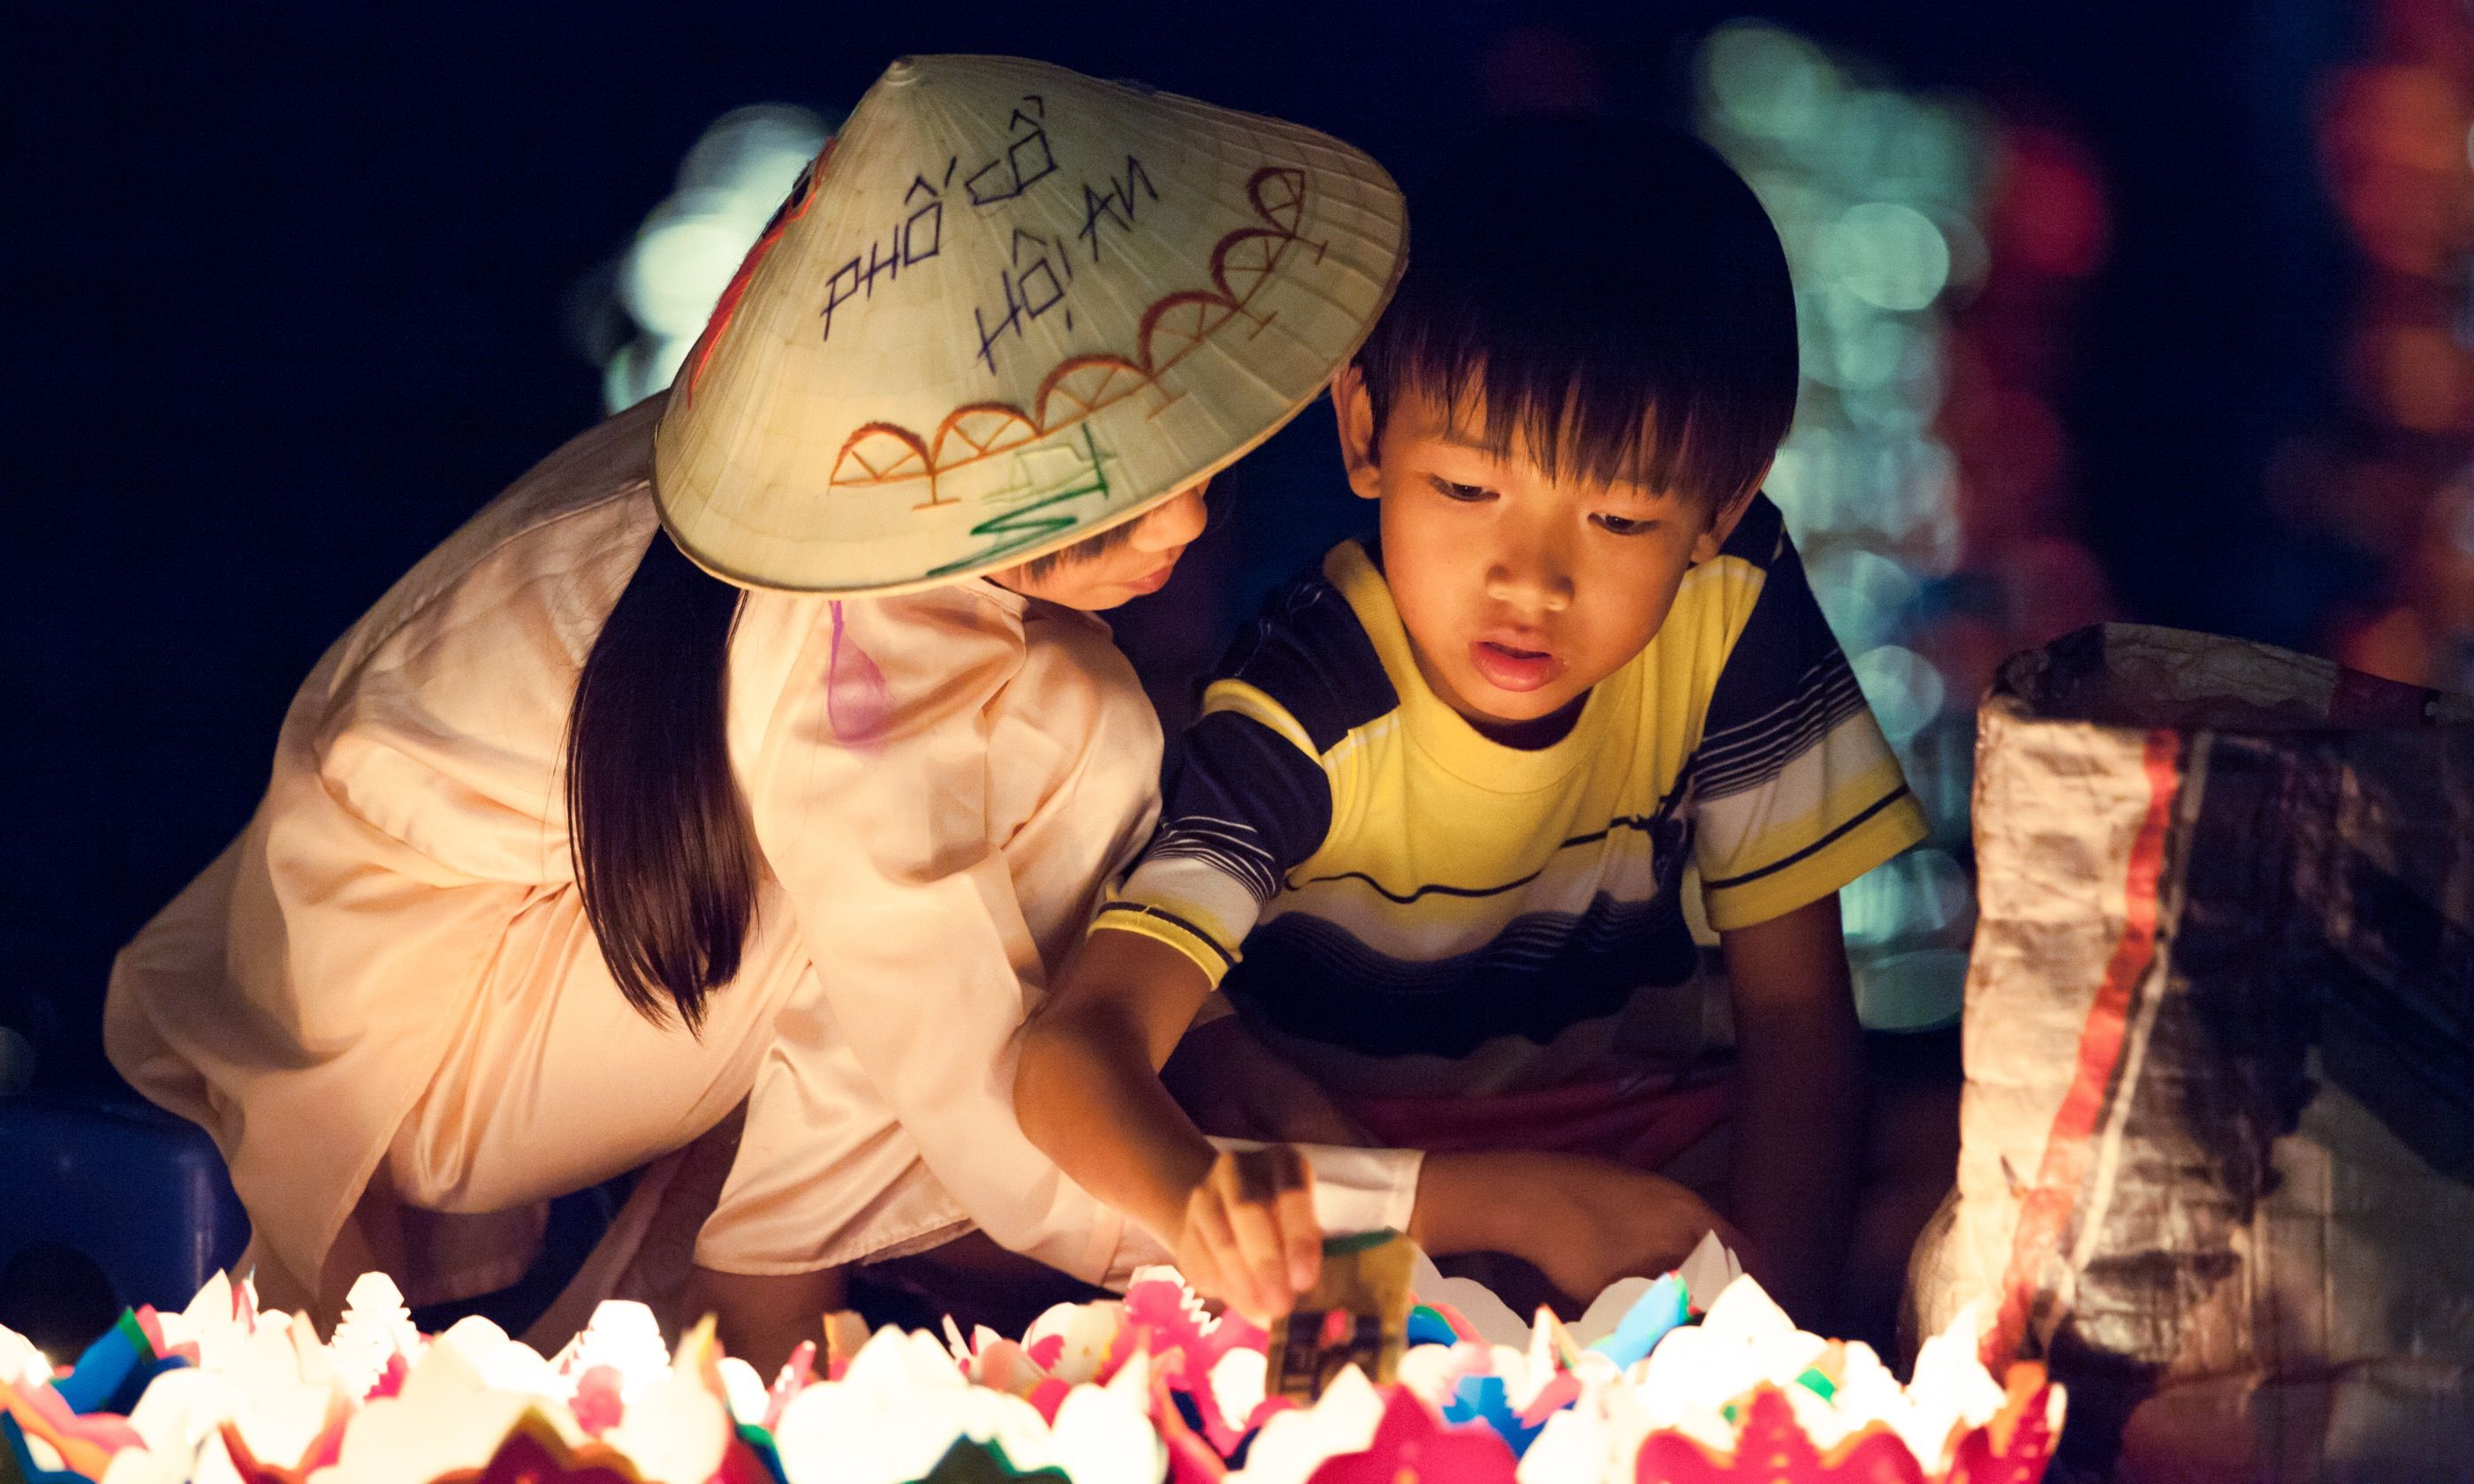 Kids lighting lanterns (Shutterstock.com)